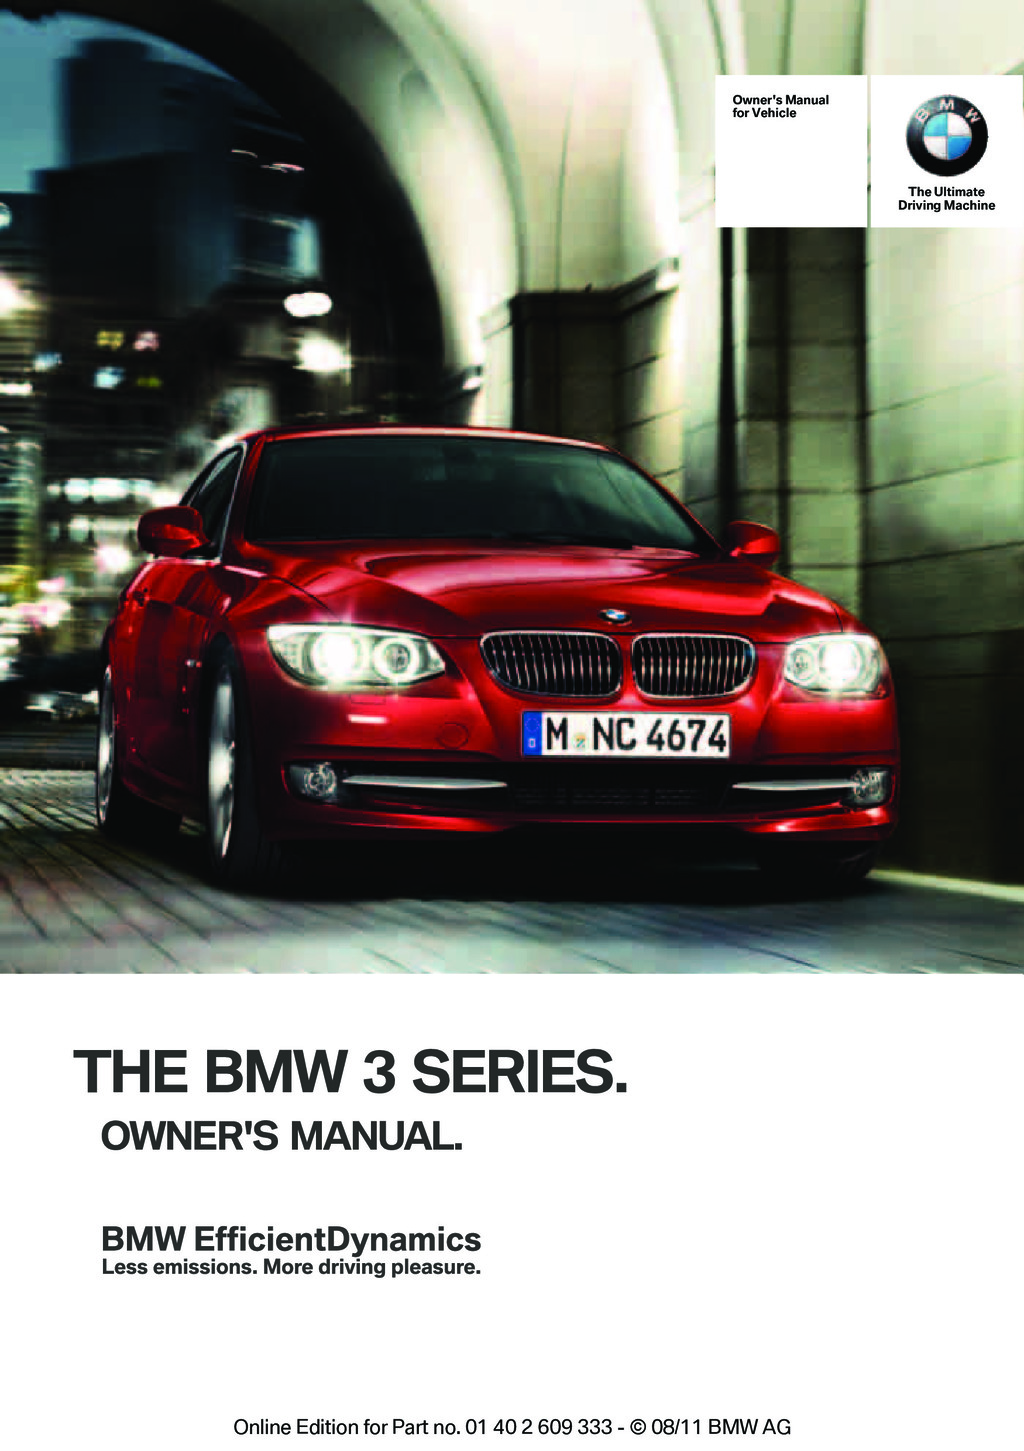 2012 BMW 3 Series M3 owners manual